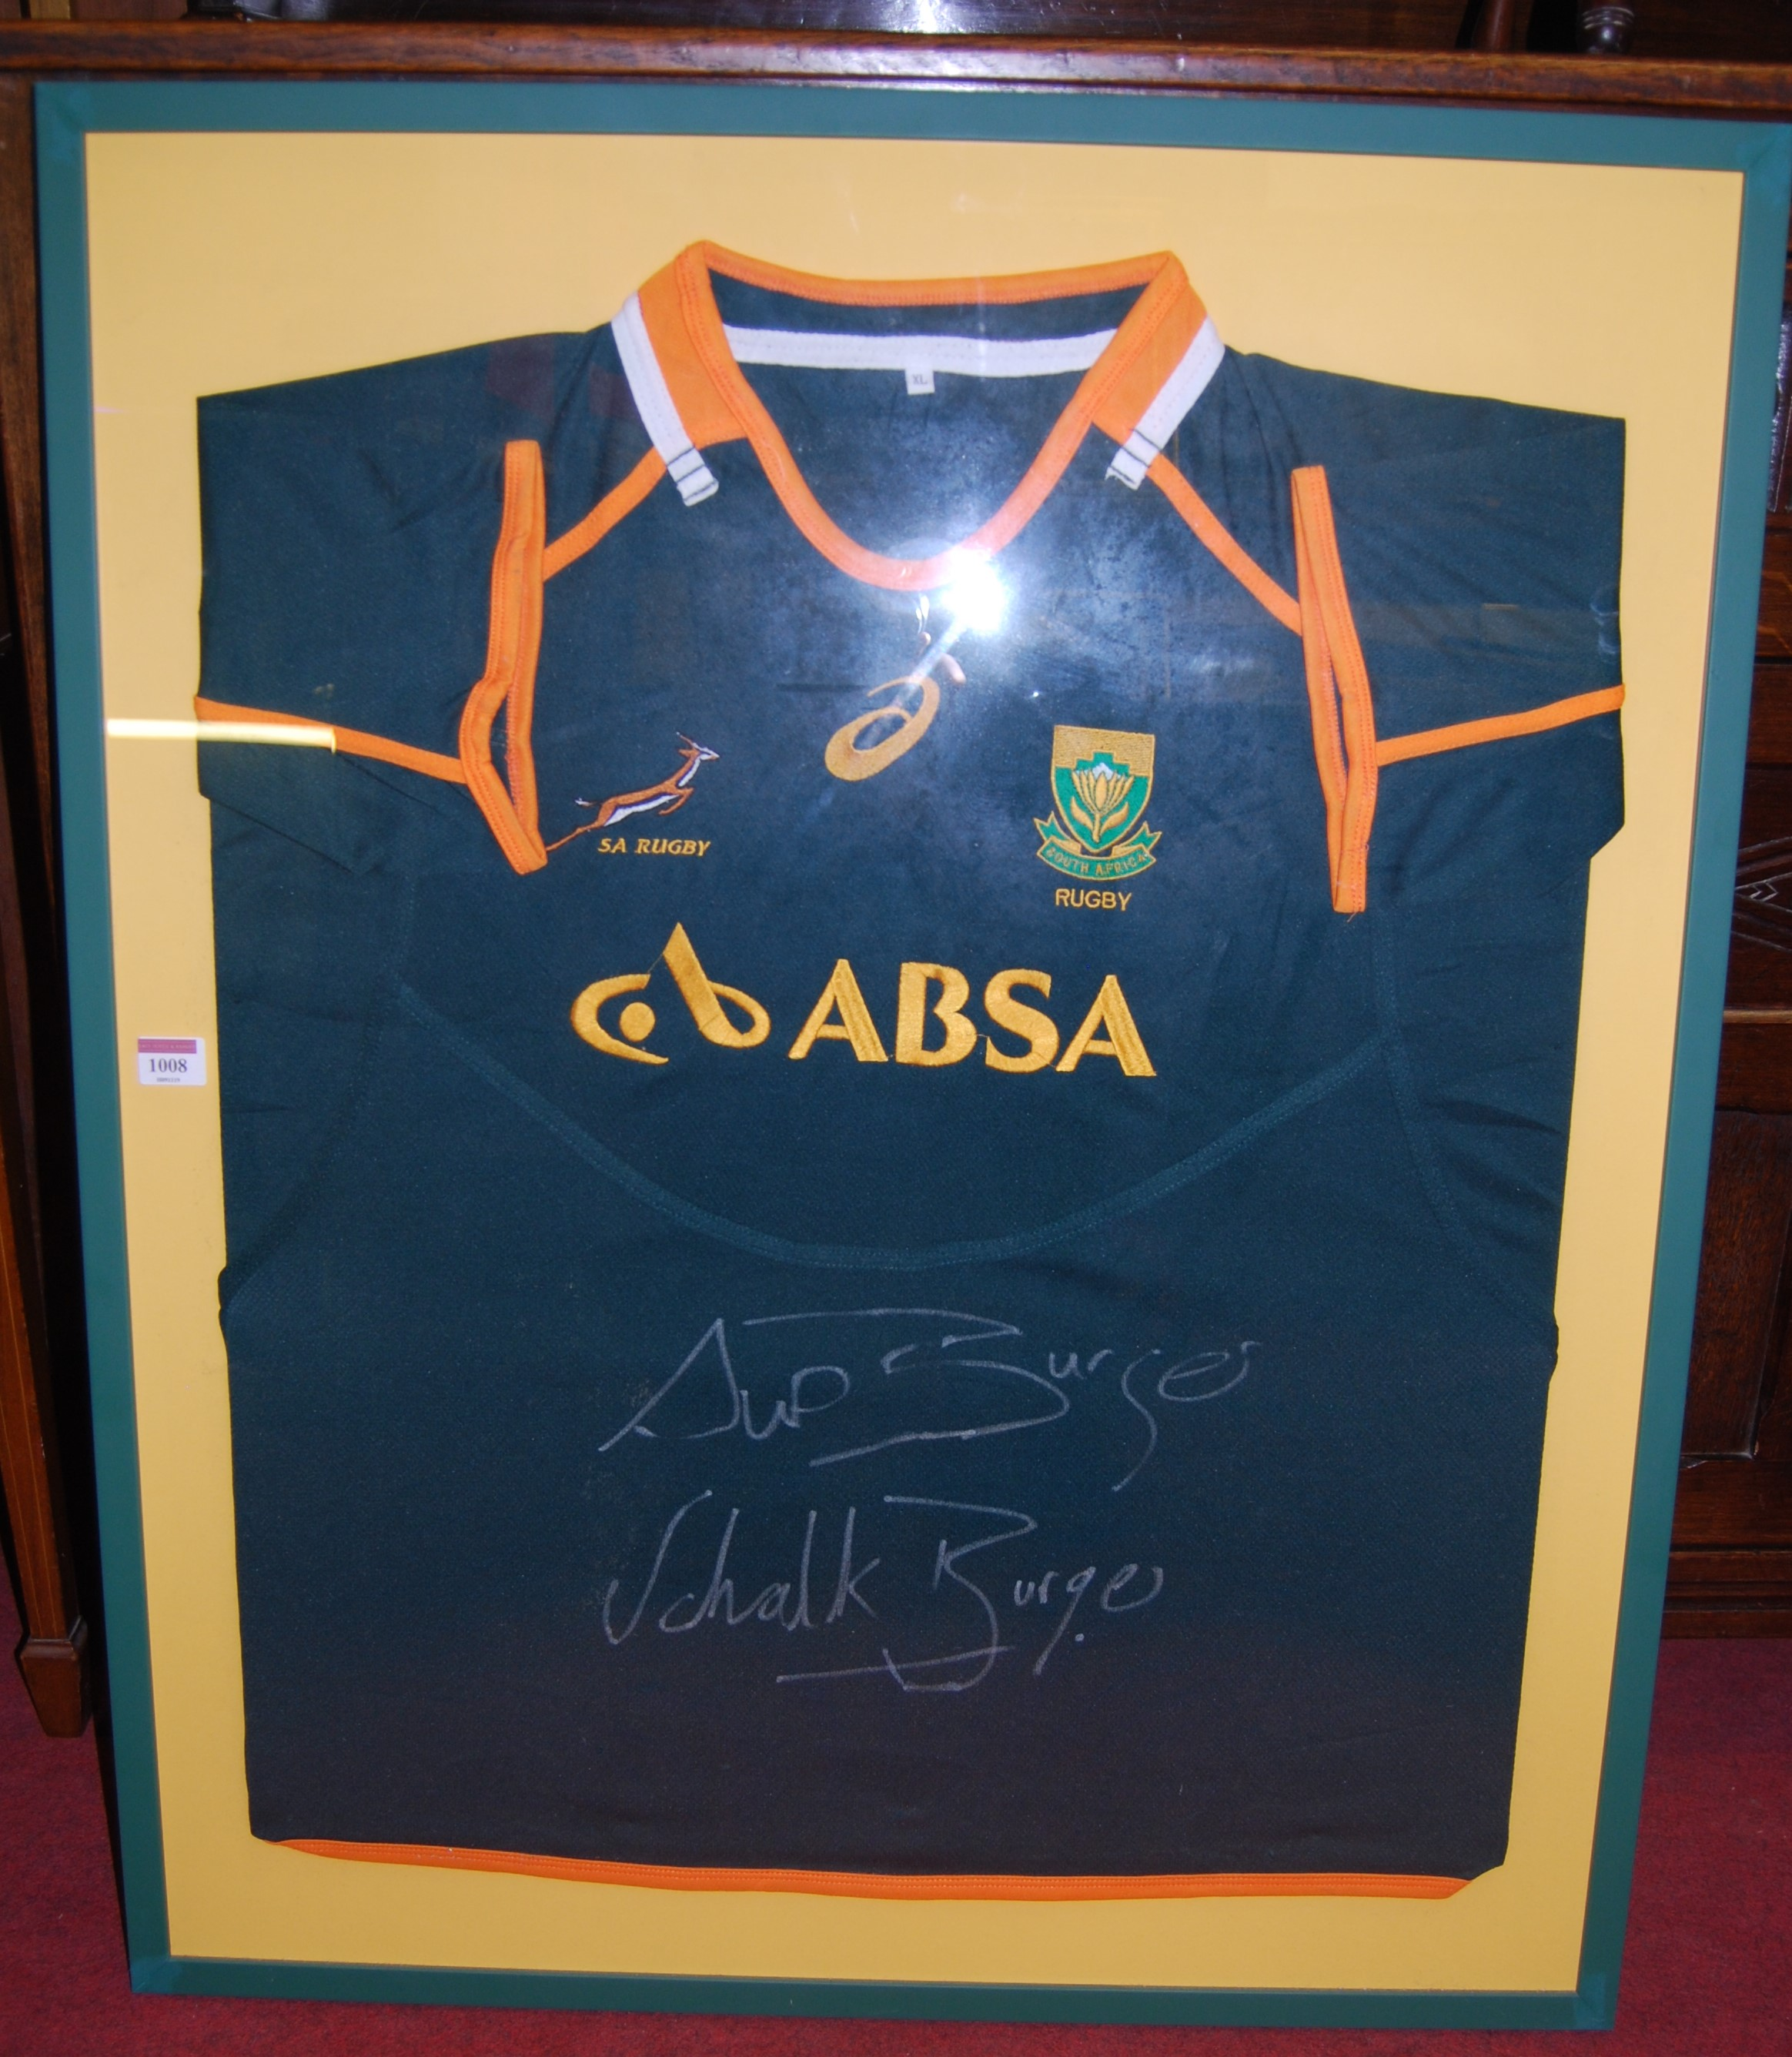 Lot 1008 - A framed South African rugby shirt, signed by Schalk Burger and Sup(?) Burger